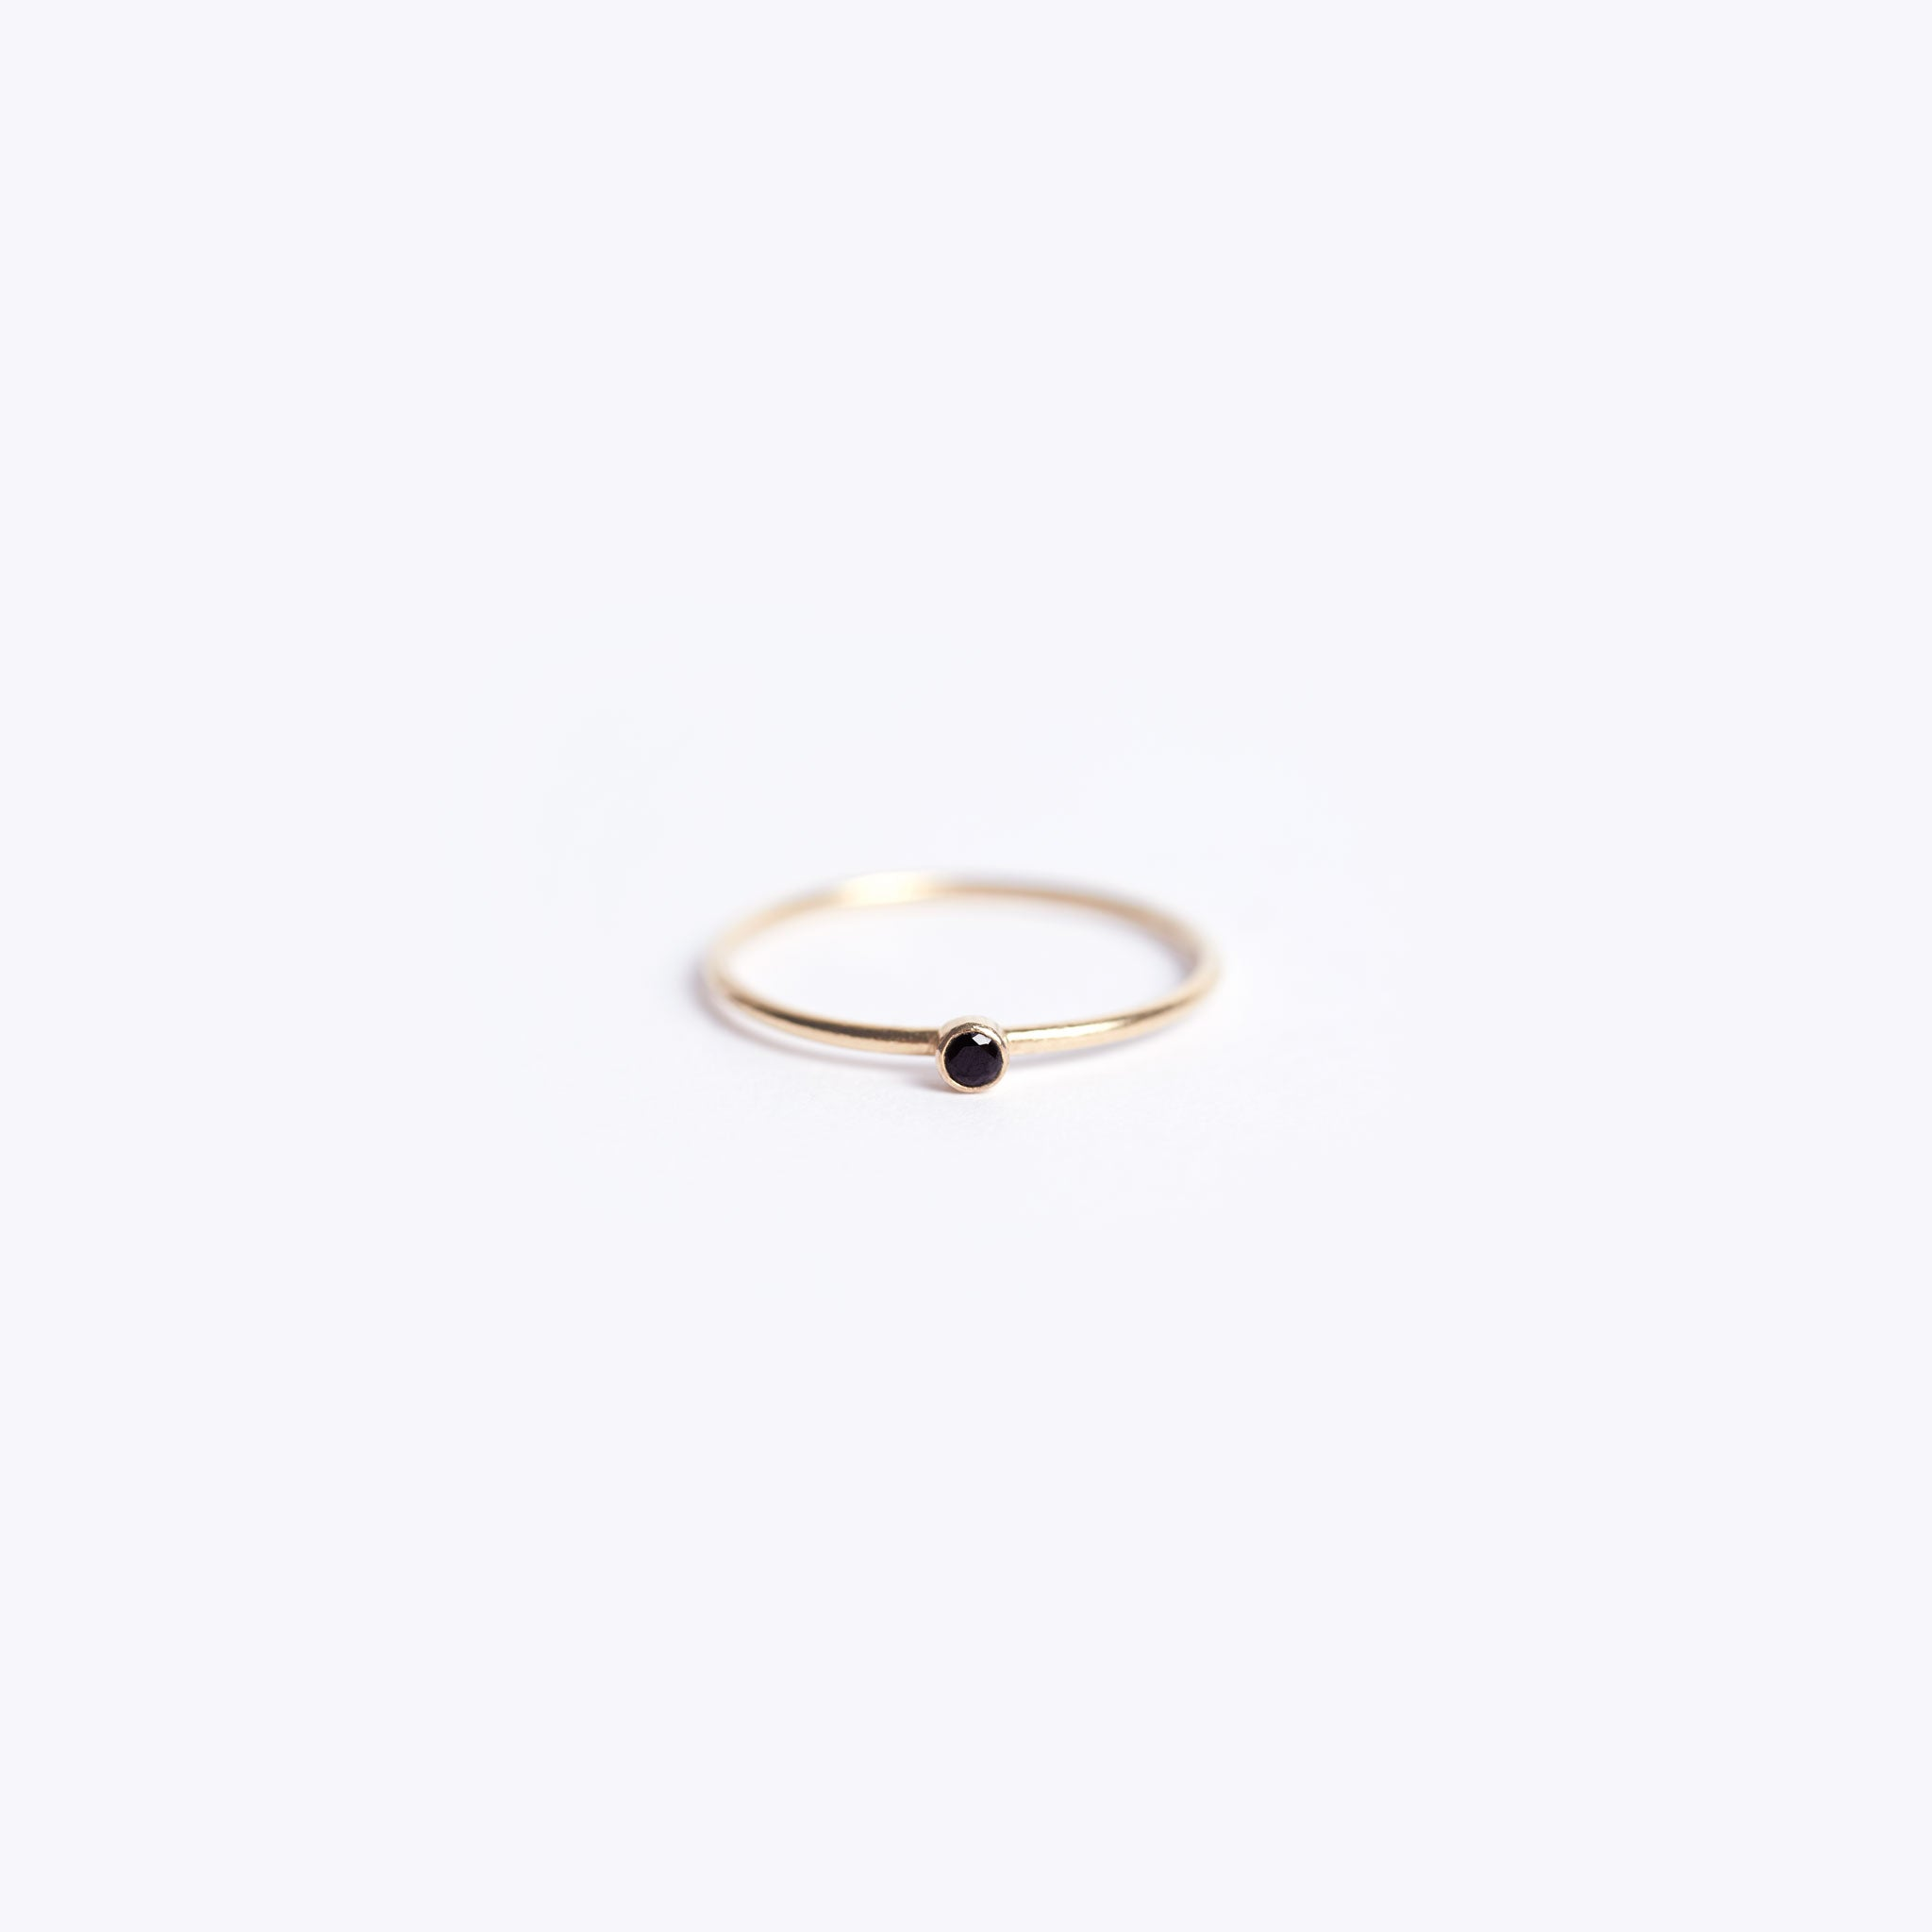 Wanderlust Life Ethically Handmade jewellery made in the UK. Minimalist gold and fine cord jewellery. unity ring, black spinel